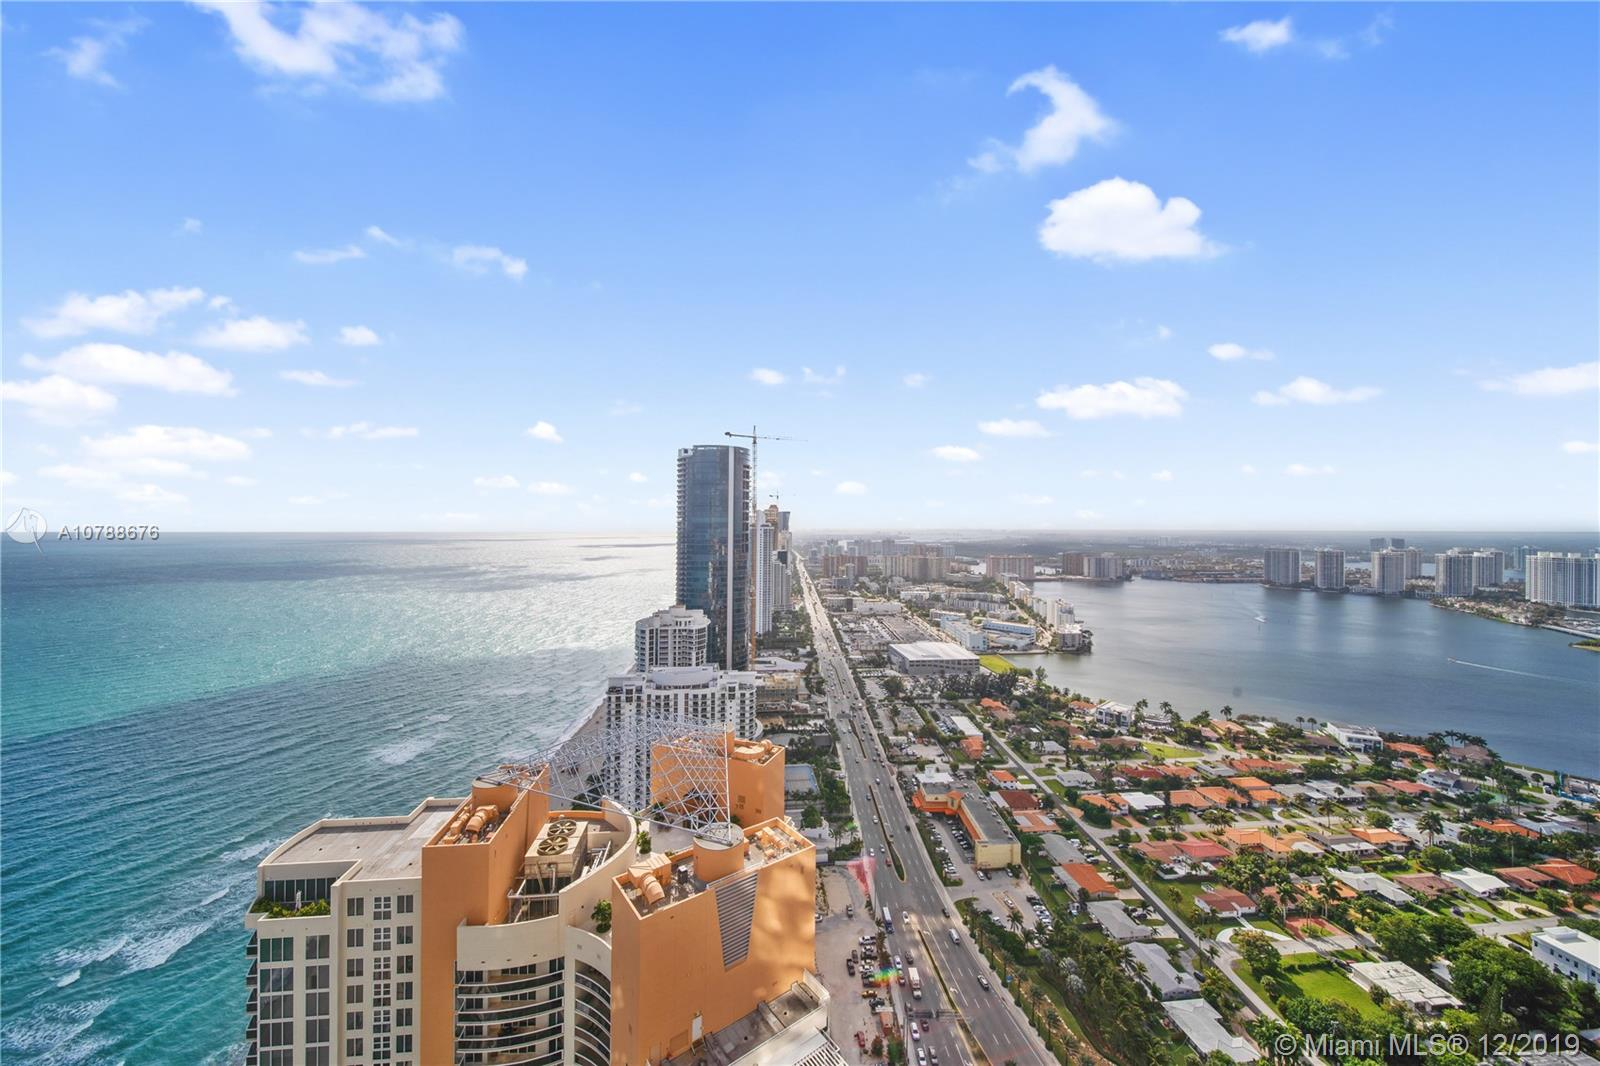 Newly completed,this elegant 56-story luxury development features 308 exclusive & luxurious oceanfront residences.Enjoy the stunning ocean and intracoastal views from this corner unit on the 43rd floor:it features Subzero fridge & Wolf appliances,stone countertops,Toto toilet,10 ft ceilings,1,013 wrap around terrace & semi-private foyer.The Armani tower and its gardens expand over the 3.2-acre site and it is located on 300 feet of oceanfront in Sunny Isles Beach,near the sophisticated Bal Harbour & Aventura.Amenities include a private oceanfront restaurant & bar,the Armani Spa,private Movie Theather,heated pool,cigar room,children playground,an Armani fitness center,expansive two story revitalization spa with indoor & outdoor treatment rooms,direct beach access & more.